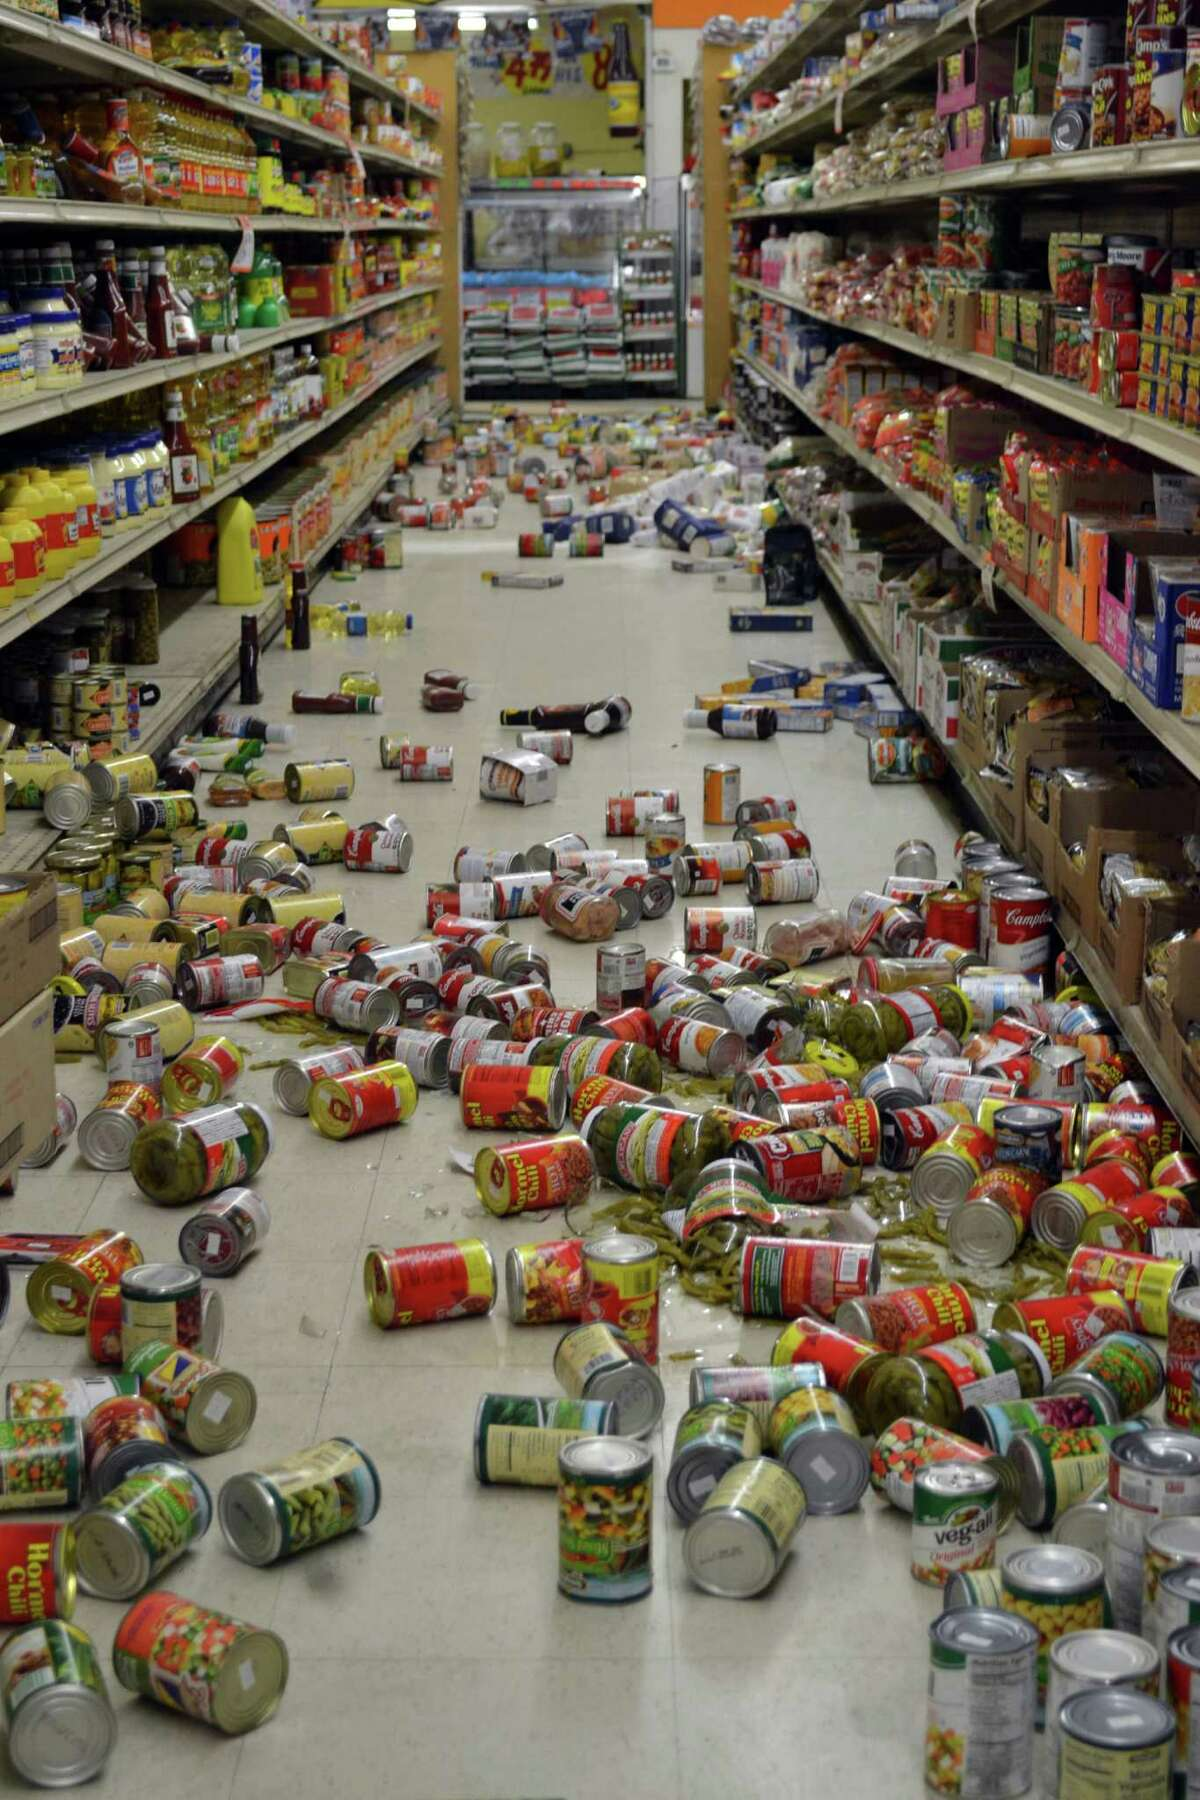 El Sol Market on Main Street in Brawley, Calif., was hit hard by the earthquakes that hit throughout Sunday, Aug. 26, 2012. Dozens of small to moderate earthquakes rattled Southern California on Sunday, shaking an area from rural Imperial County to the San Diego coast and north into the Coachella Valley. (AP Photo/Imperial Valley Press, Brandy Ronek)